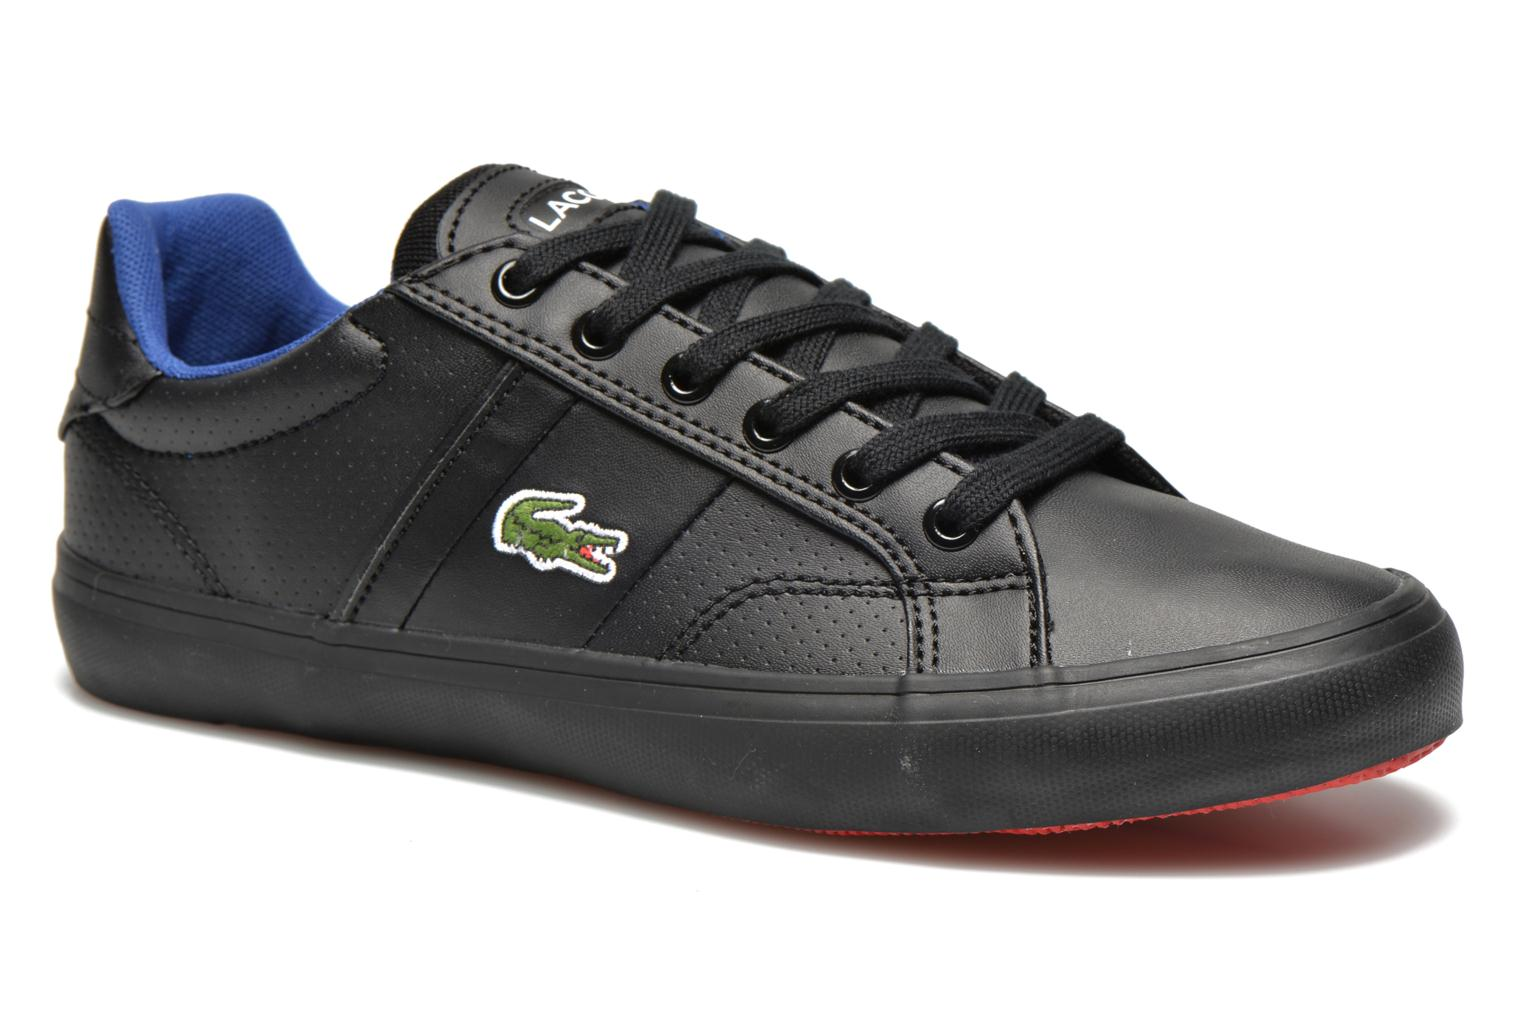 Sneakers Fairlead Tcl Spj by Lacoste